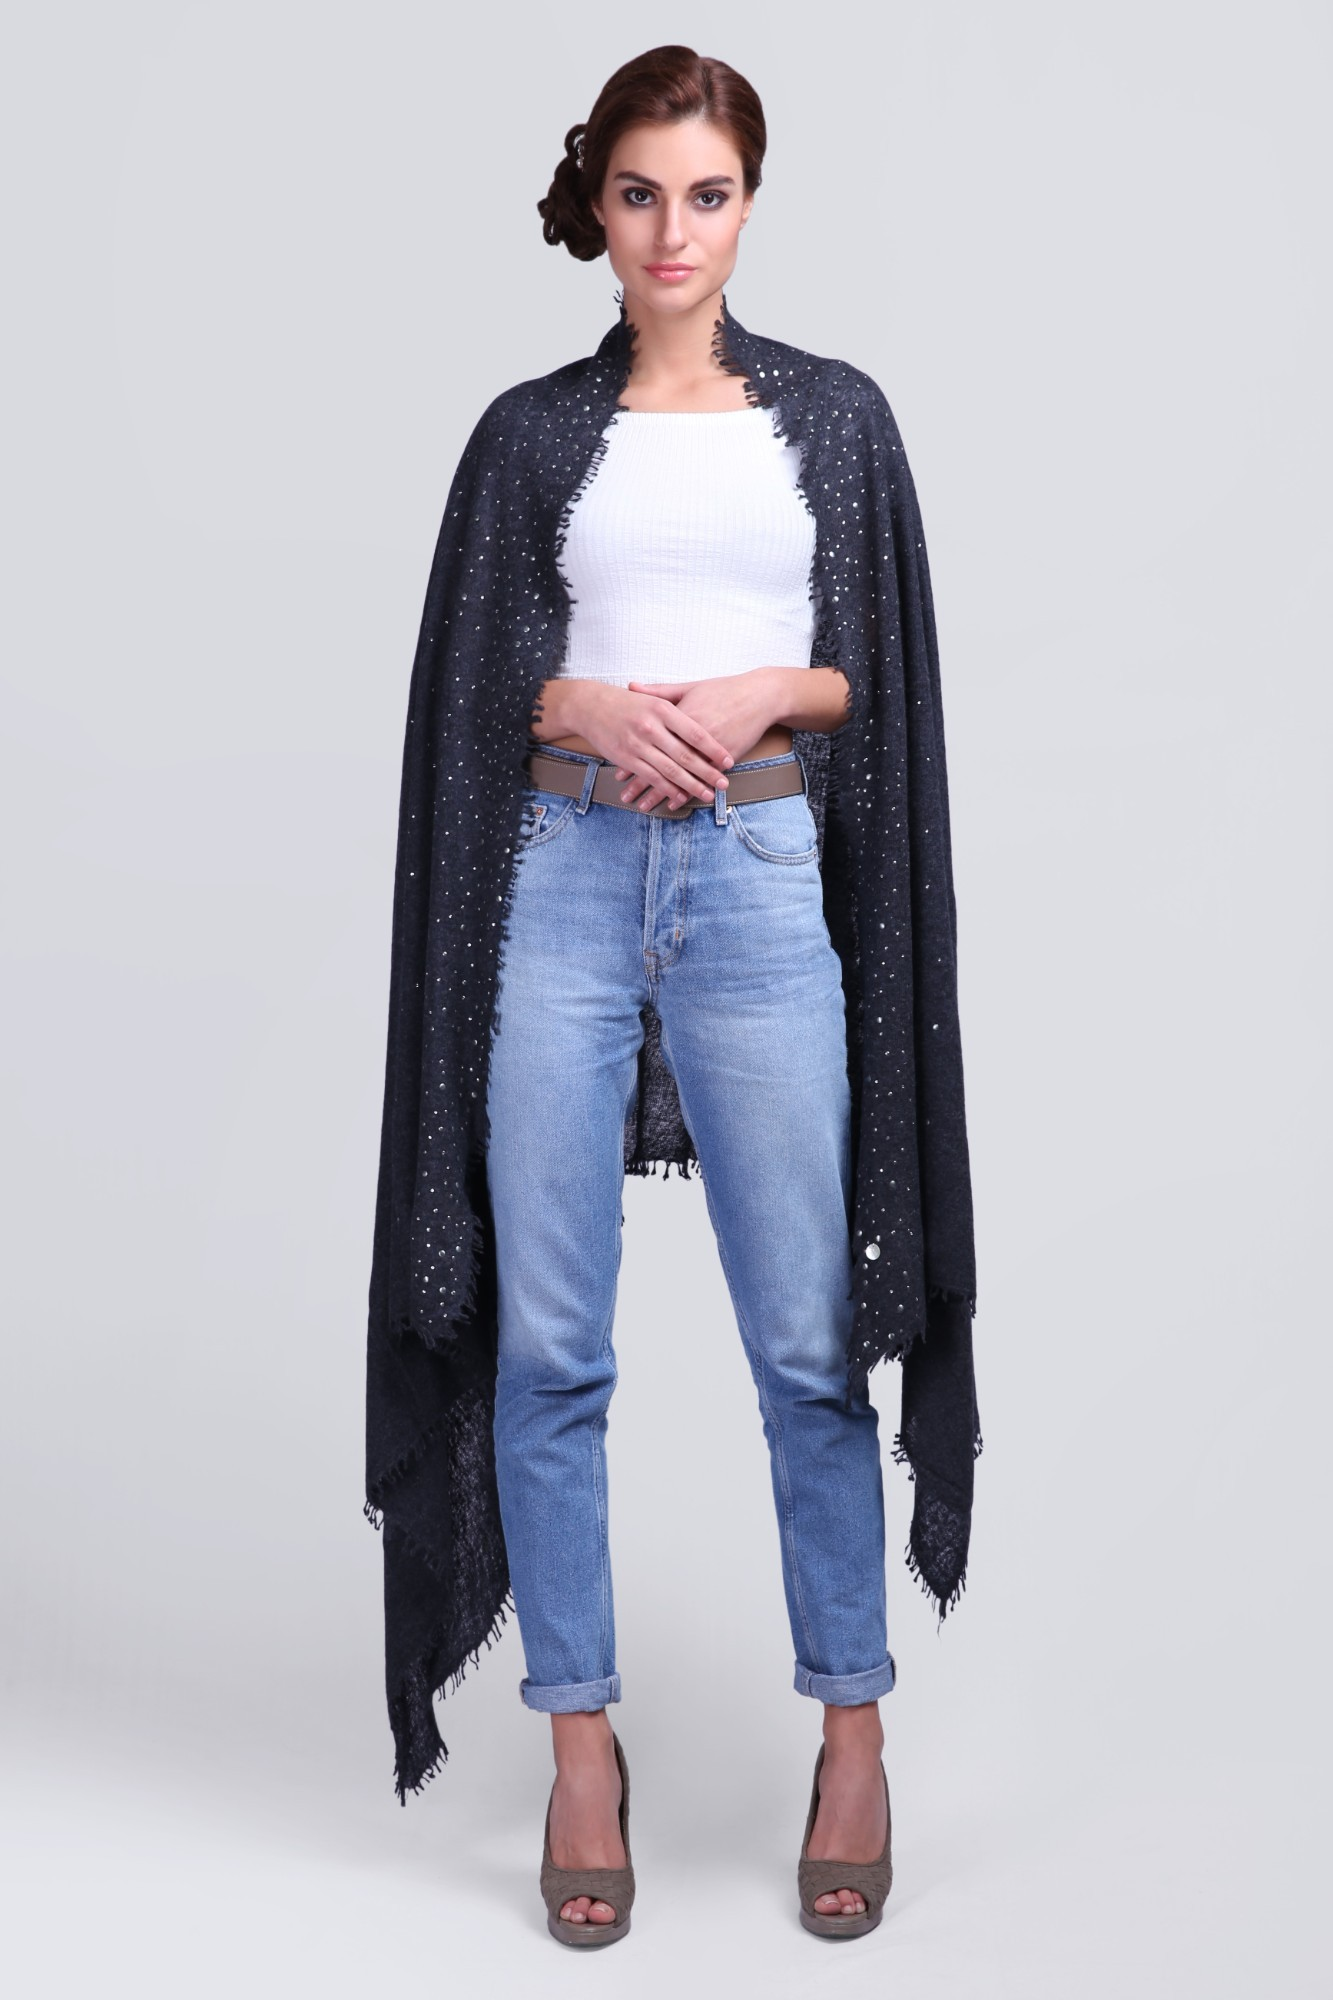 Classic Cashmere Shawl with Swarovski - VS 11988A Charcoal